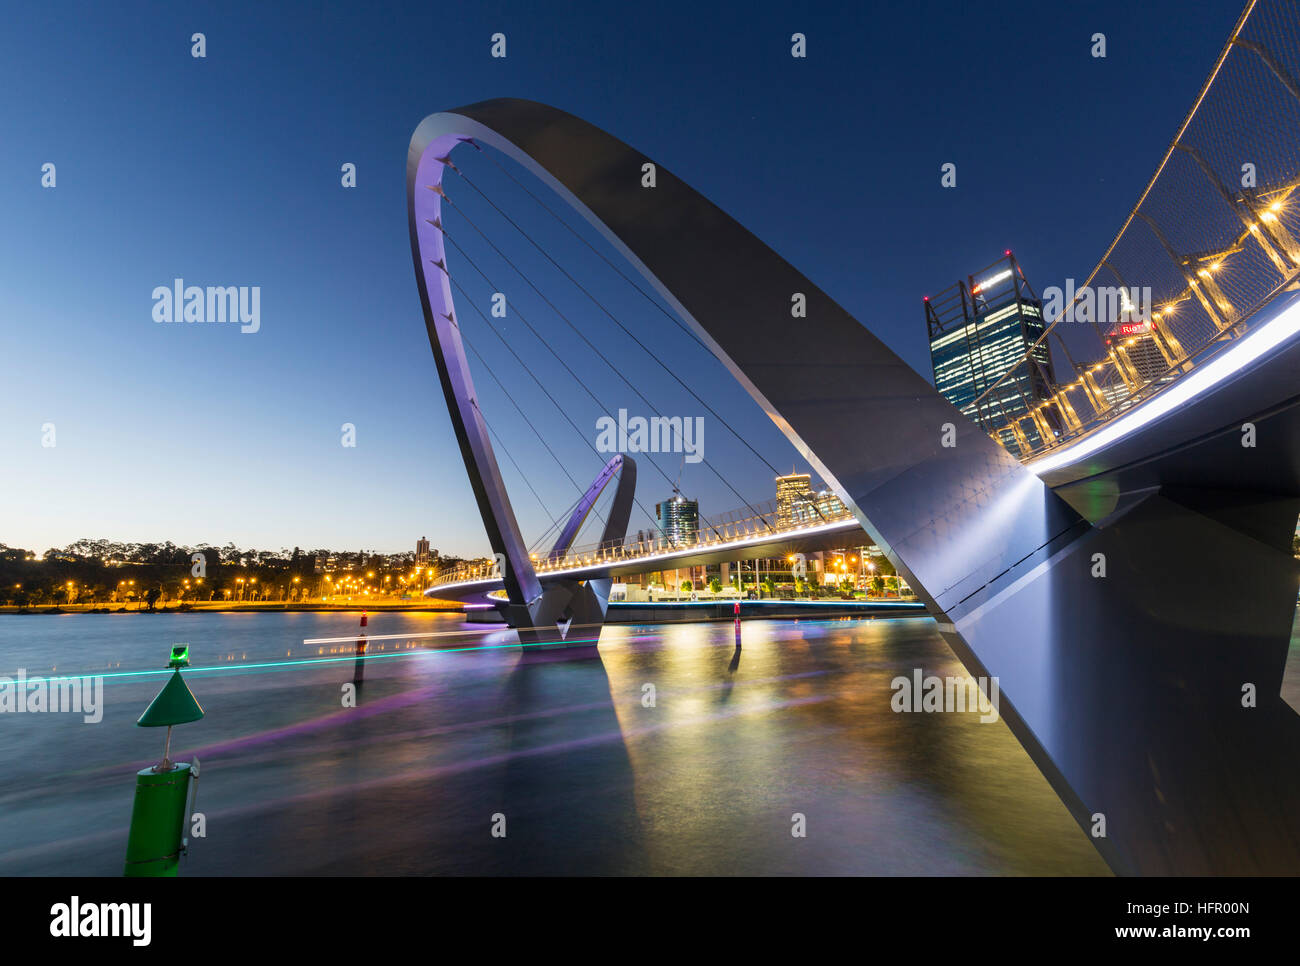 Ferry lights passing under the illuminated Elizabeth Quay bridge at twilight, Perth, Western Australia, Australia - Stock Image